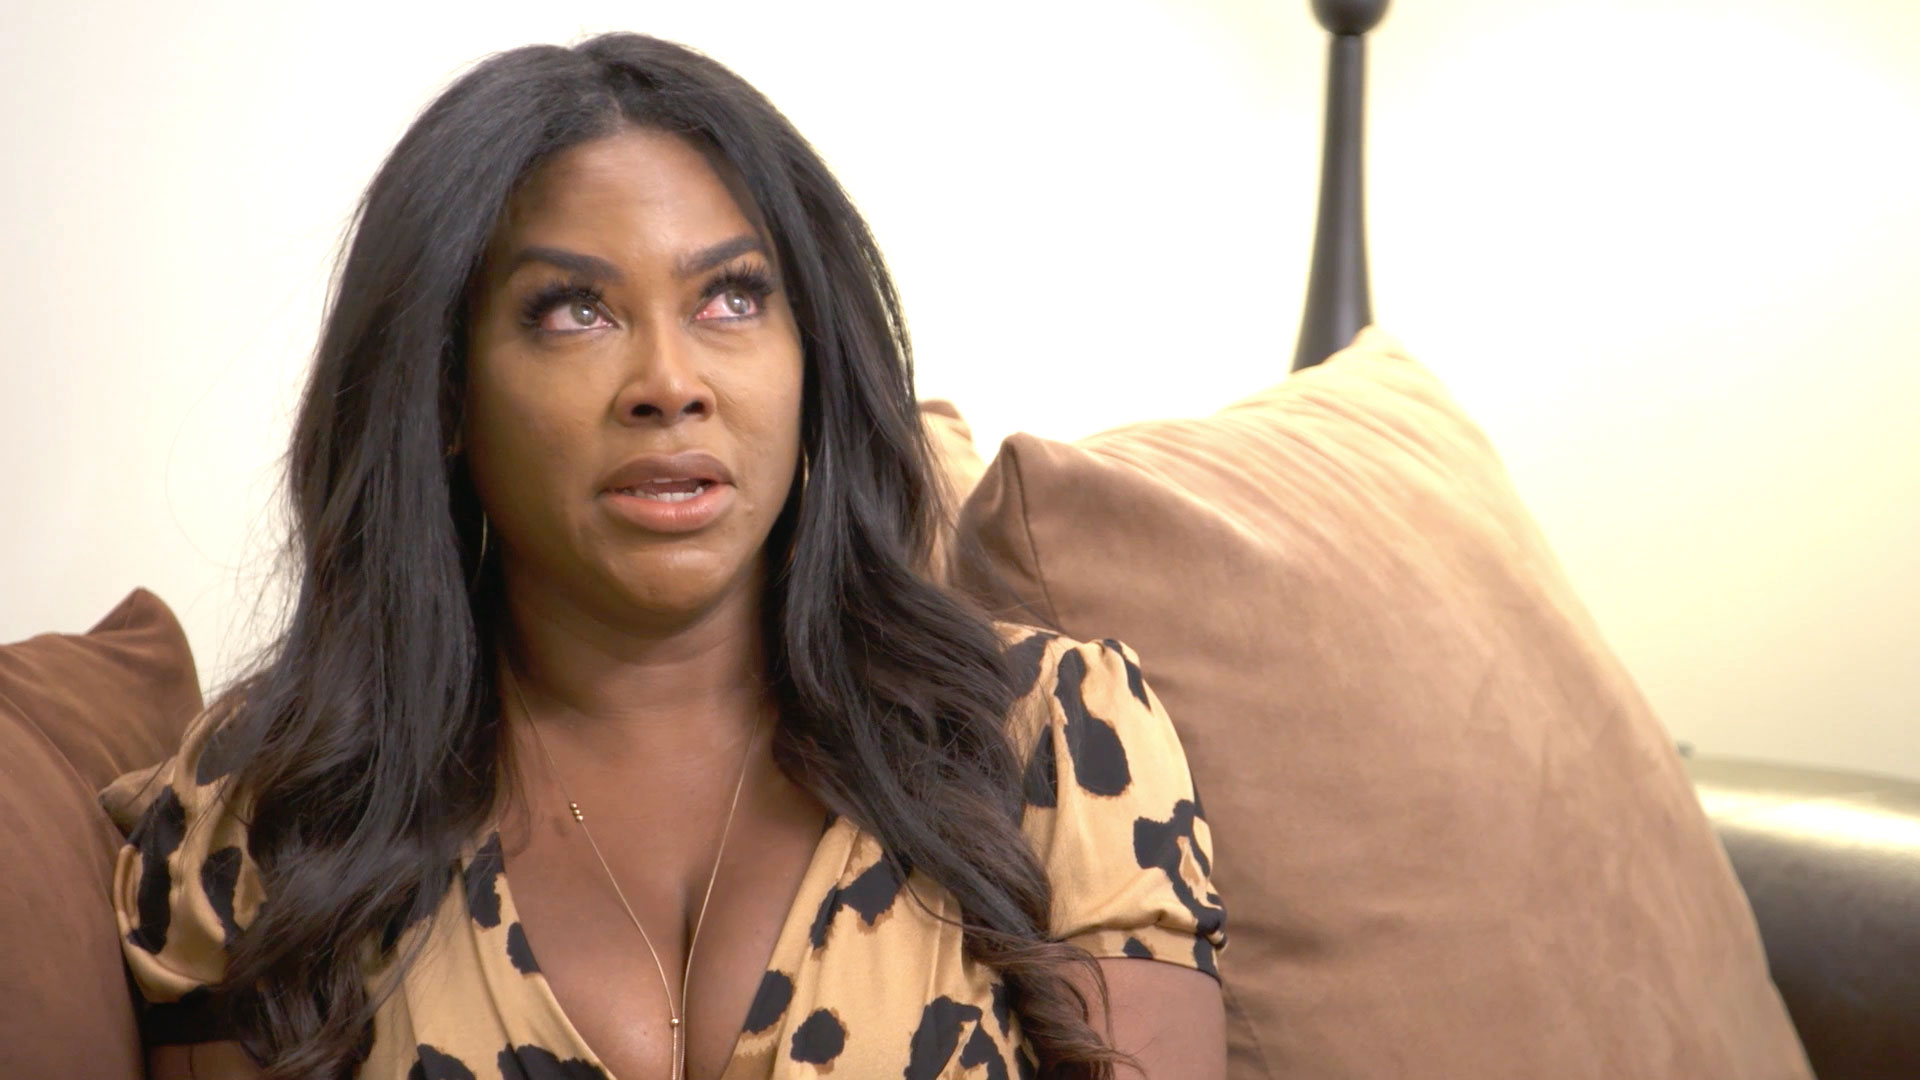 Kenya Moore Breaks Down in Therapy